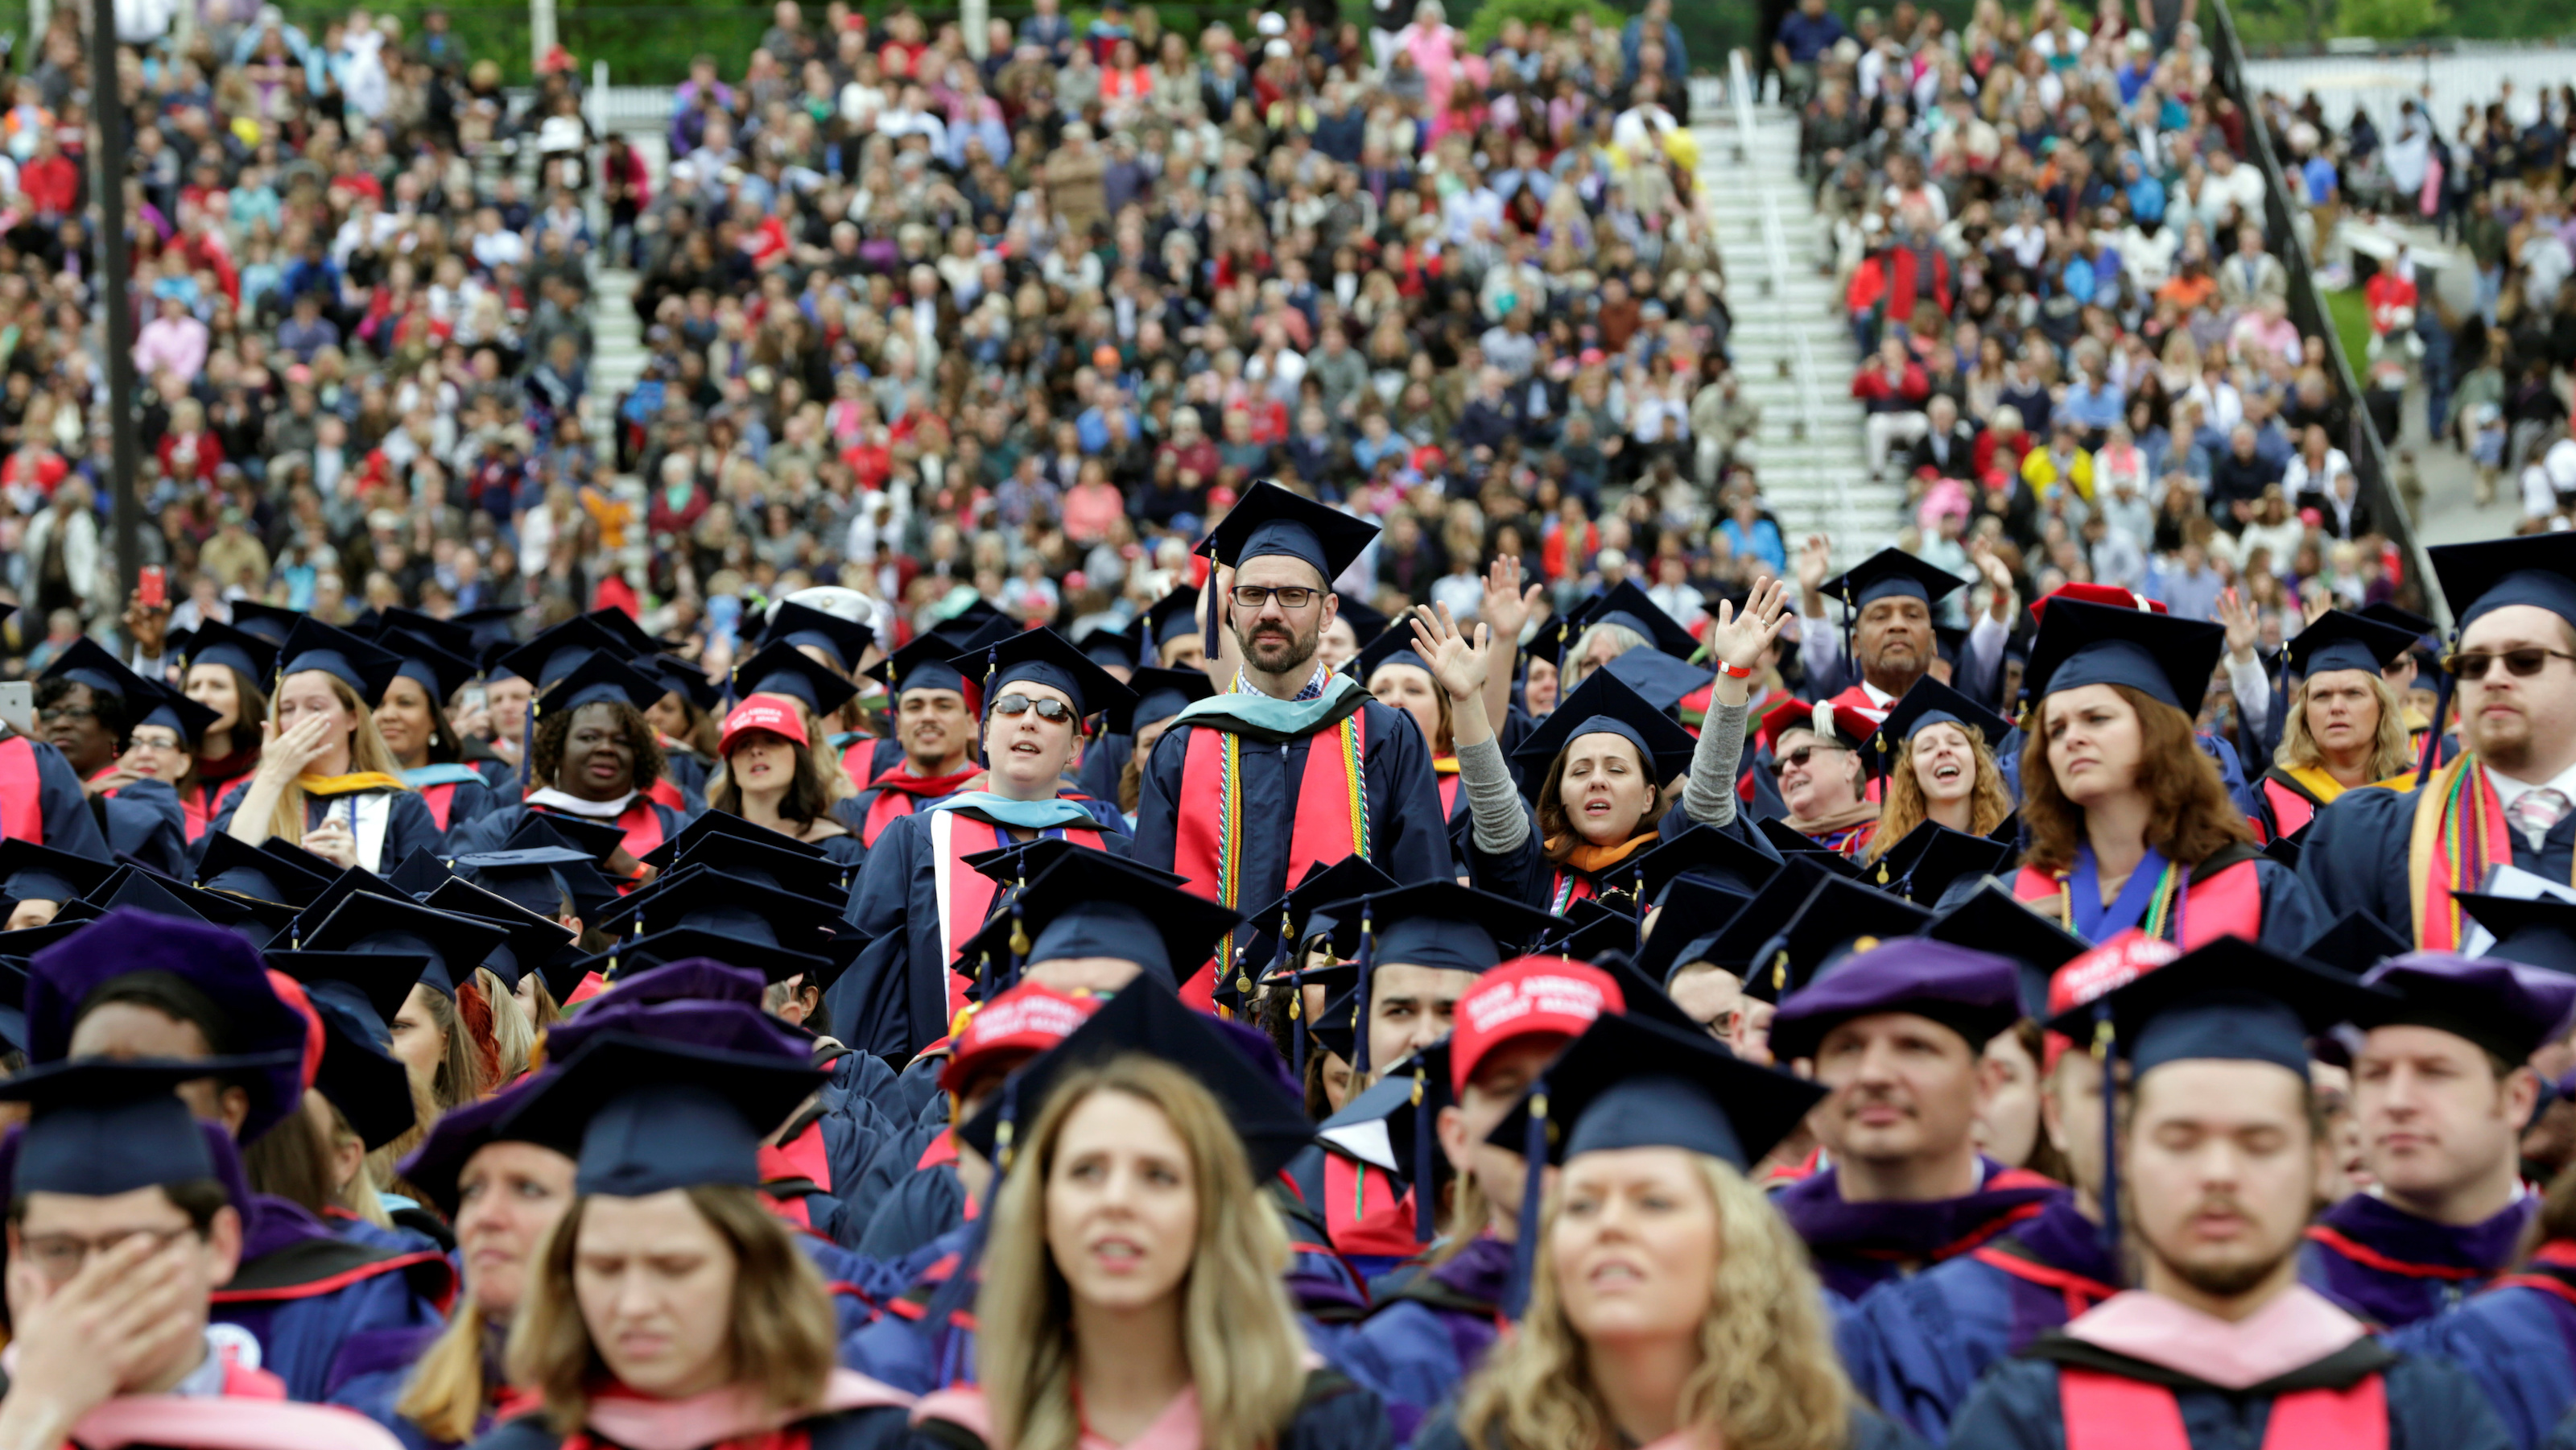 Graduating students attend a commencement ceremony with U.S. President Donald Trump at Liberty University  in Lynchburg, Virginia, U.S., May 13, 2017. REUTERS/Yuri Gripas - RTX35OMY